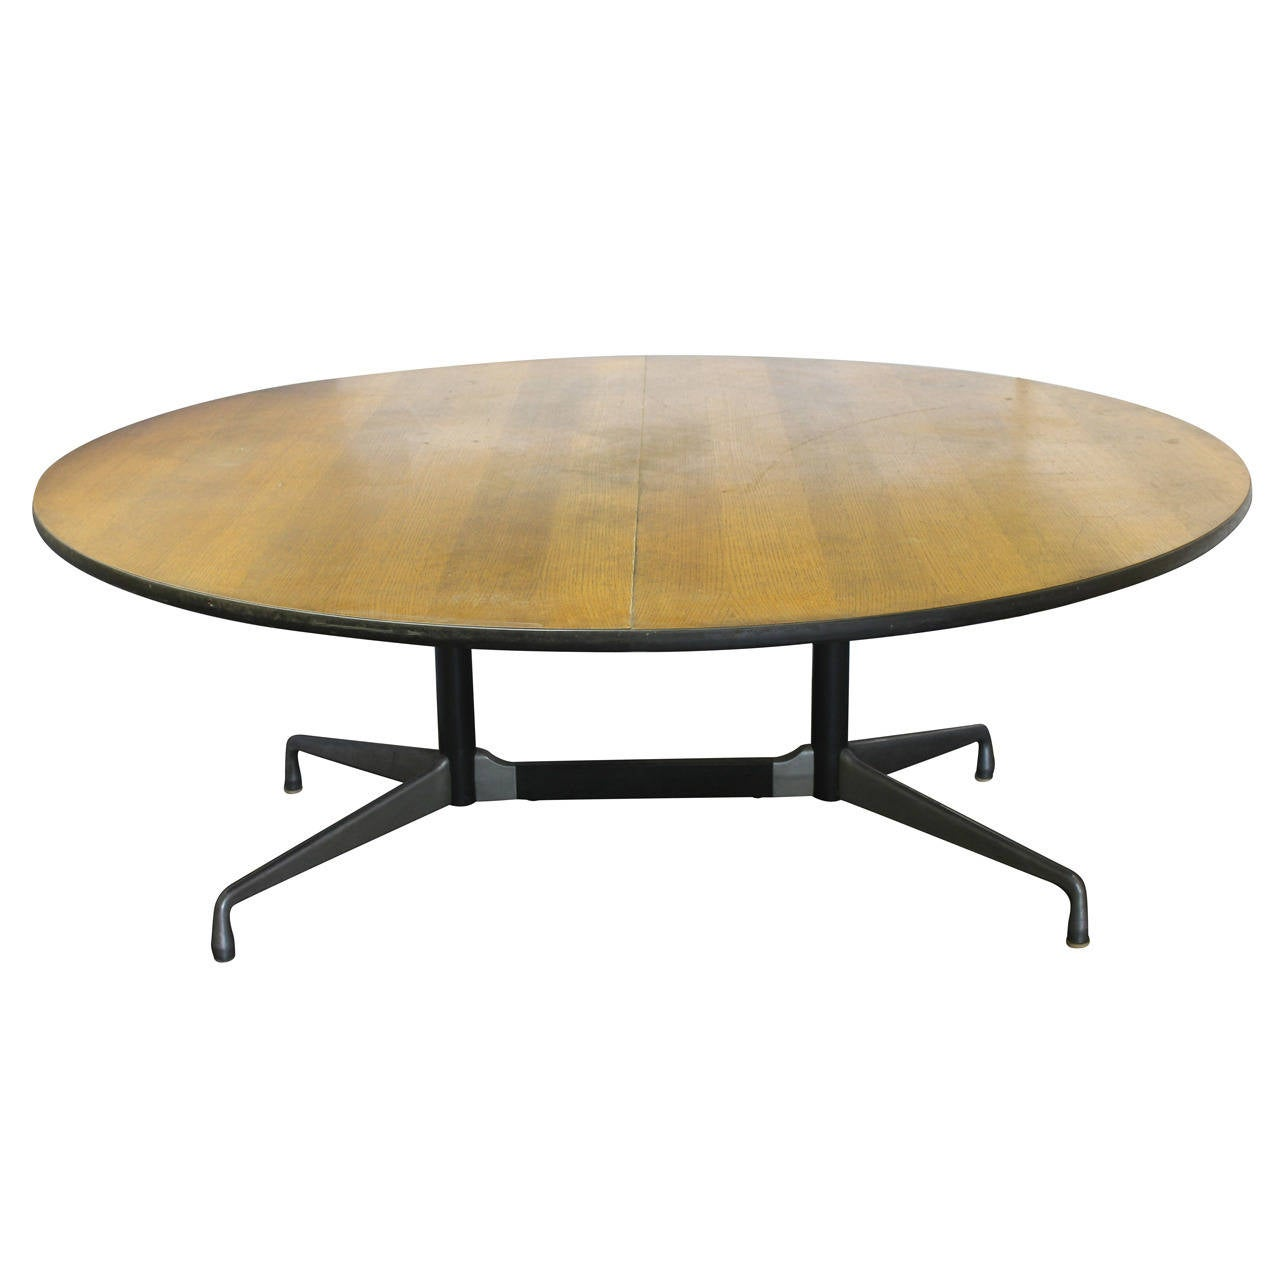 Six foot dining round table by charles and ray eames for for Dining room table for 6